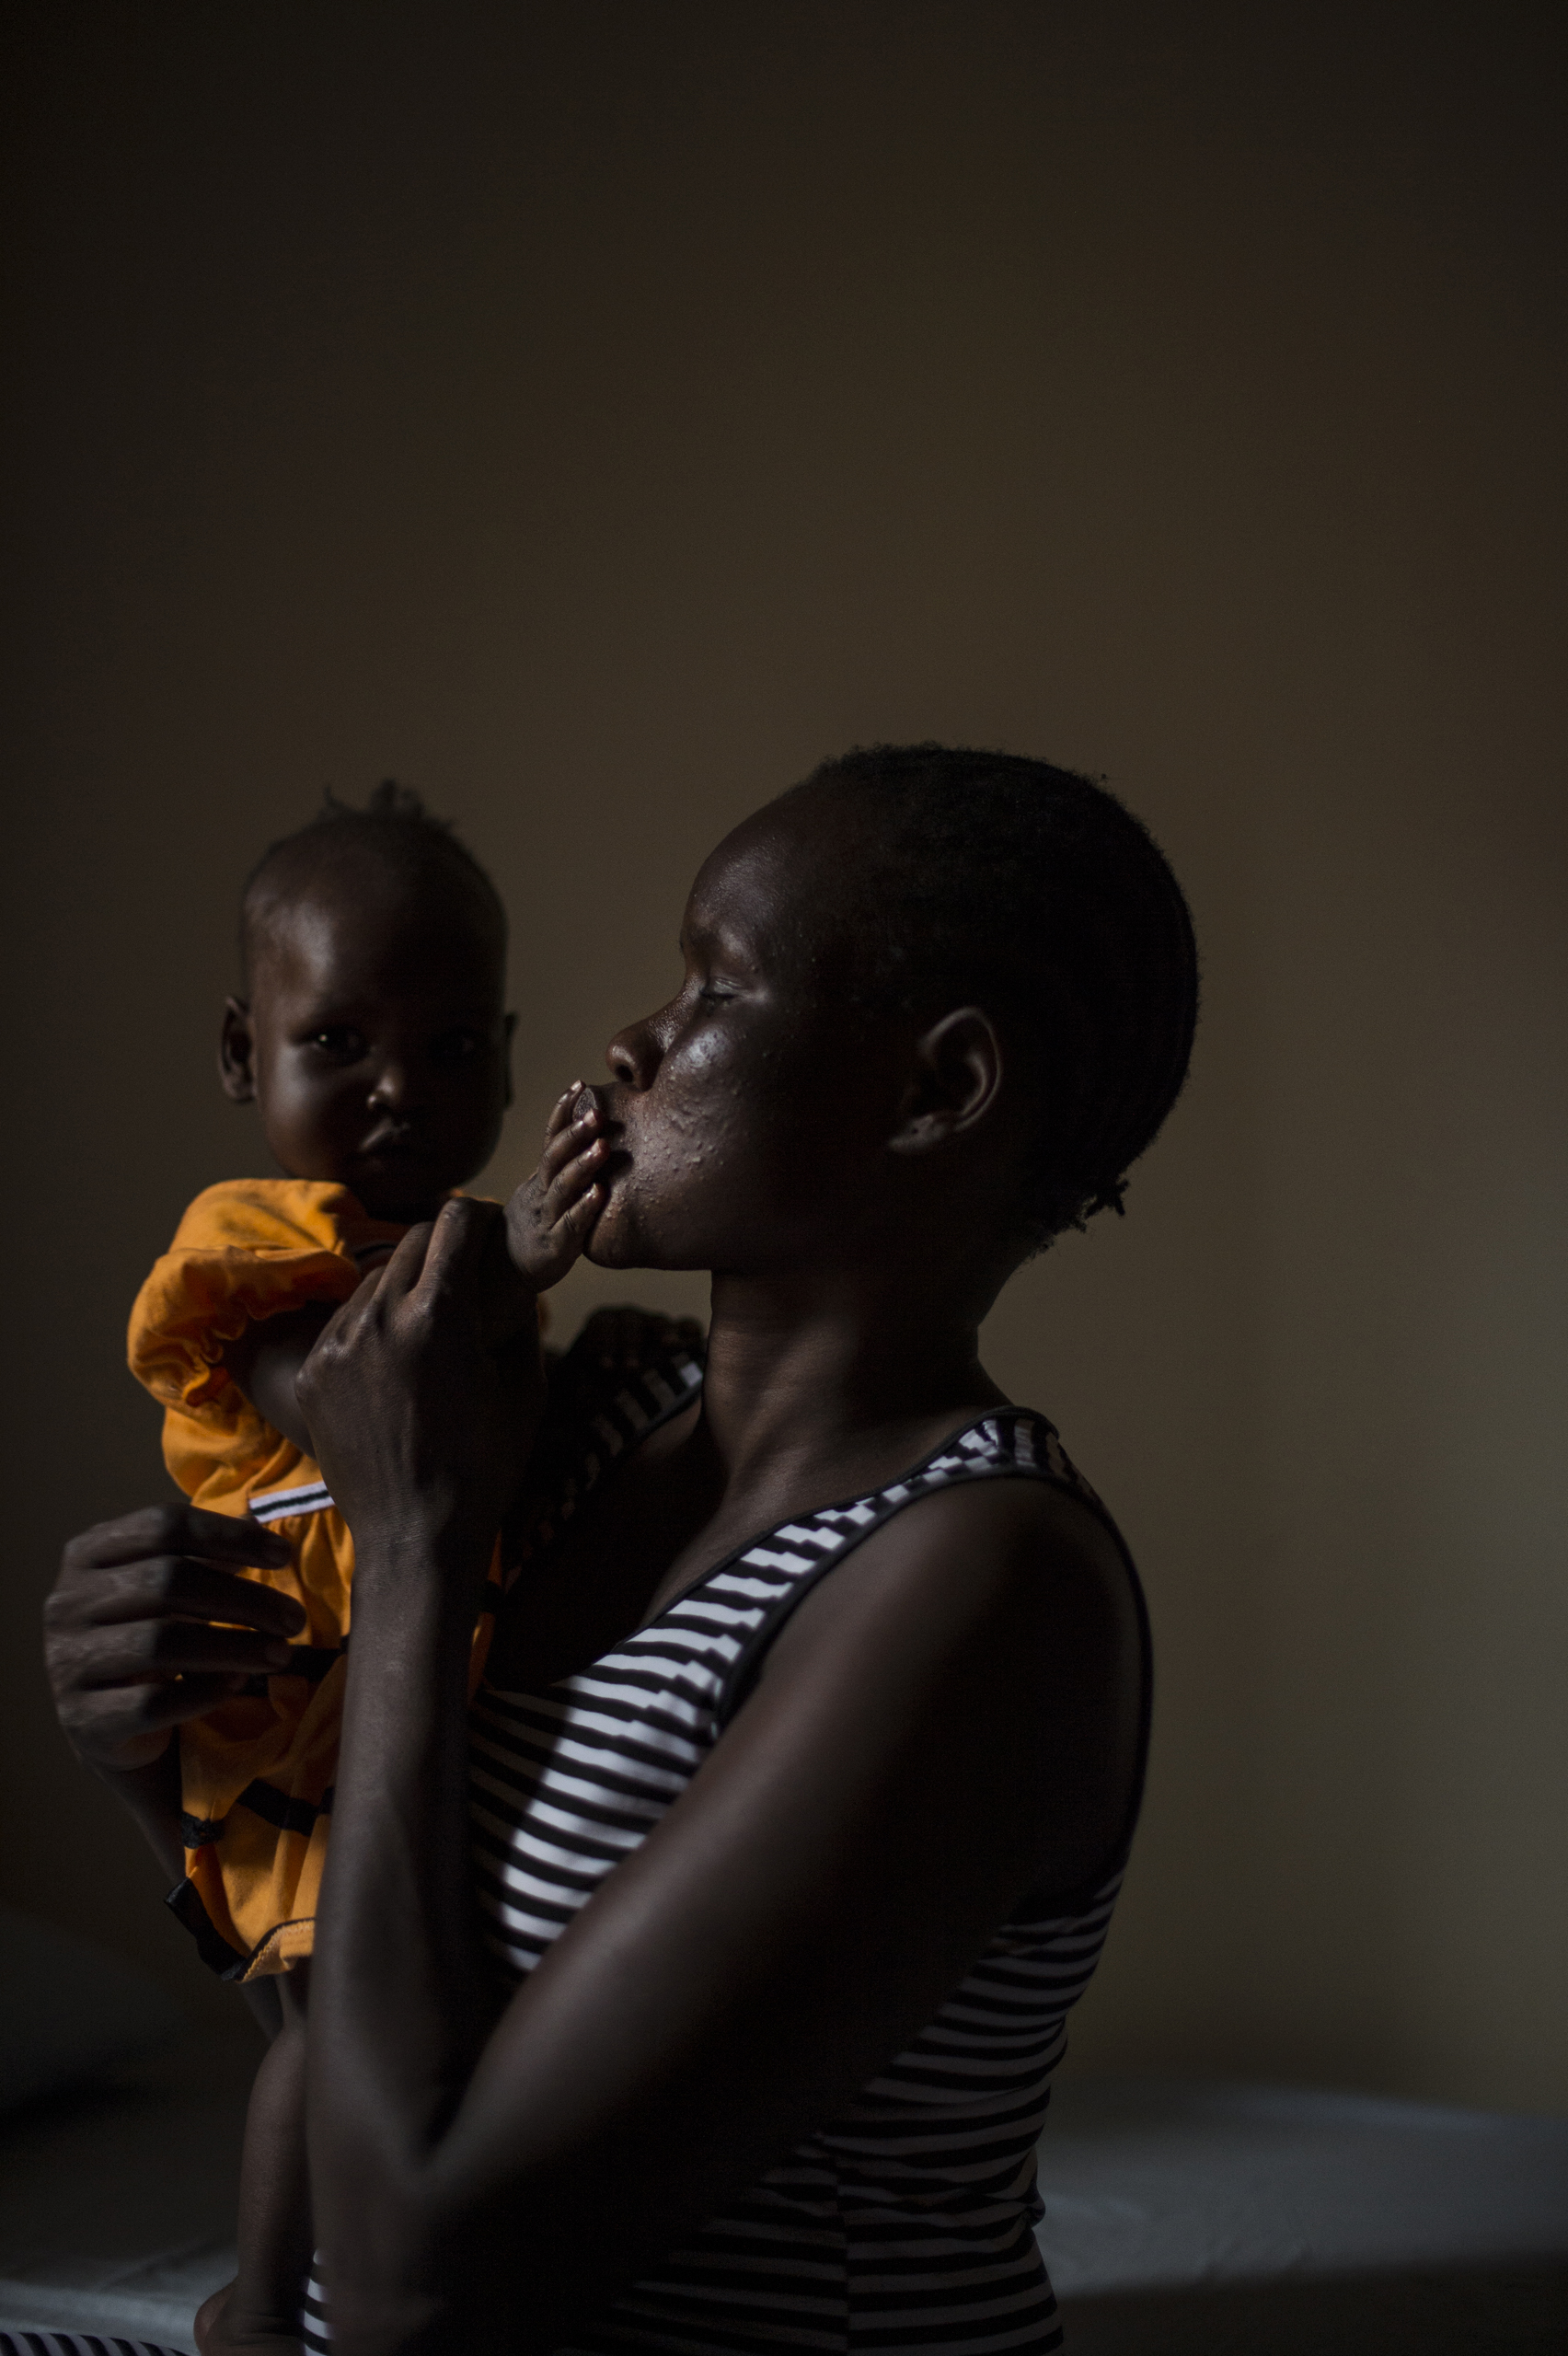 Mary, 27, holds her six-month old daughter, Nyakwat, who was born after Mary was raped repeatedly at a U.N. camp in South Sudan by different men. She now lives in a safe house in Uganda, Dec. 8, 2015.Mary, a member of the Nuer tribe, watched as her husband and her two sons were killed in front of her by  soldiers of the Dinka tribe. Five of them held her down as three others raped her 10-year-old daughter who died hours later.The soldiers, who also raped Mary, told her that they considered the Nuers in the camps to be rebels, and that they killed her sons because they couldn't risk letting them grow up to be fighters.Mary made her way to a U.N. camp for civilians displaced by war where she lived for a year and was raped by soldiers who made their way into the camp.